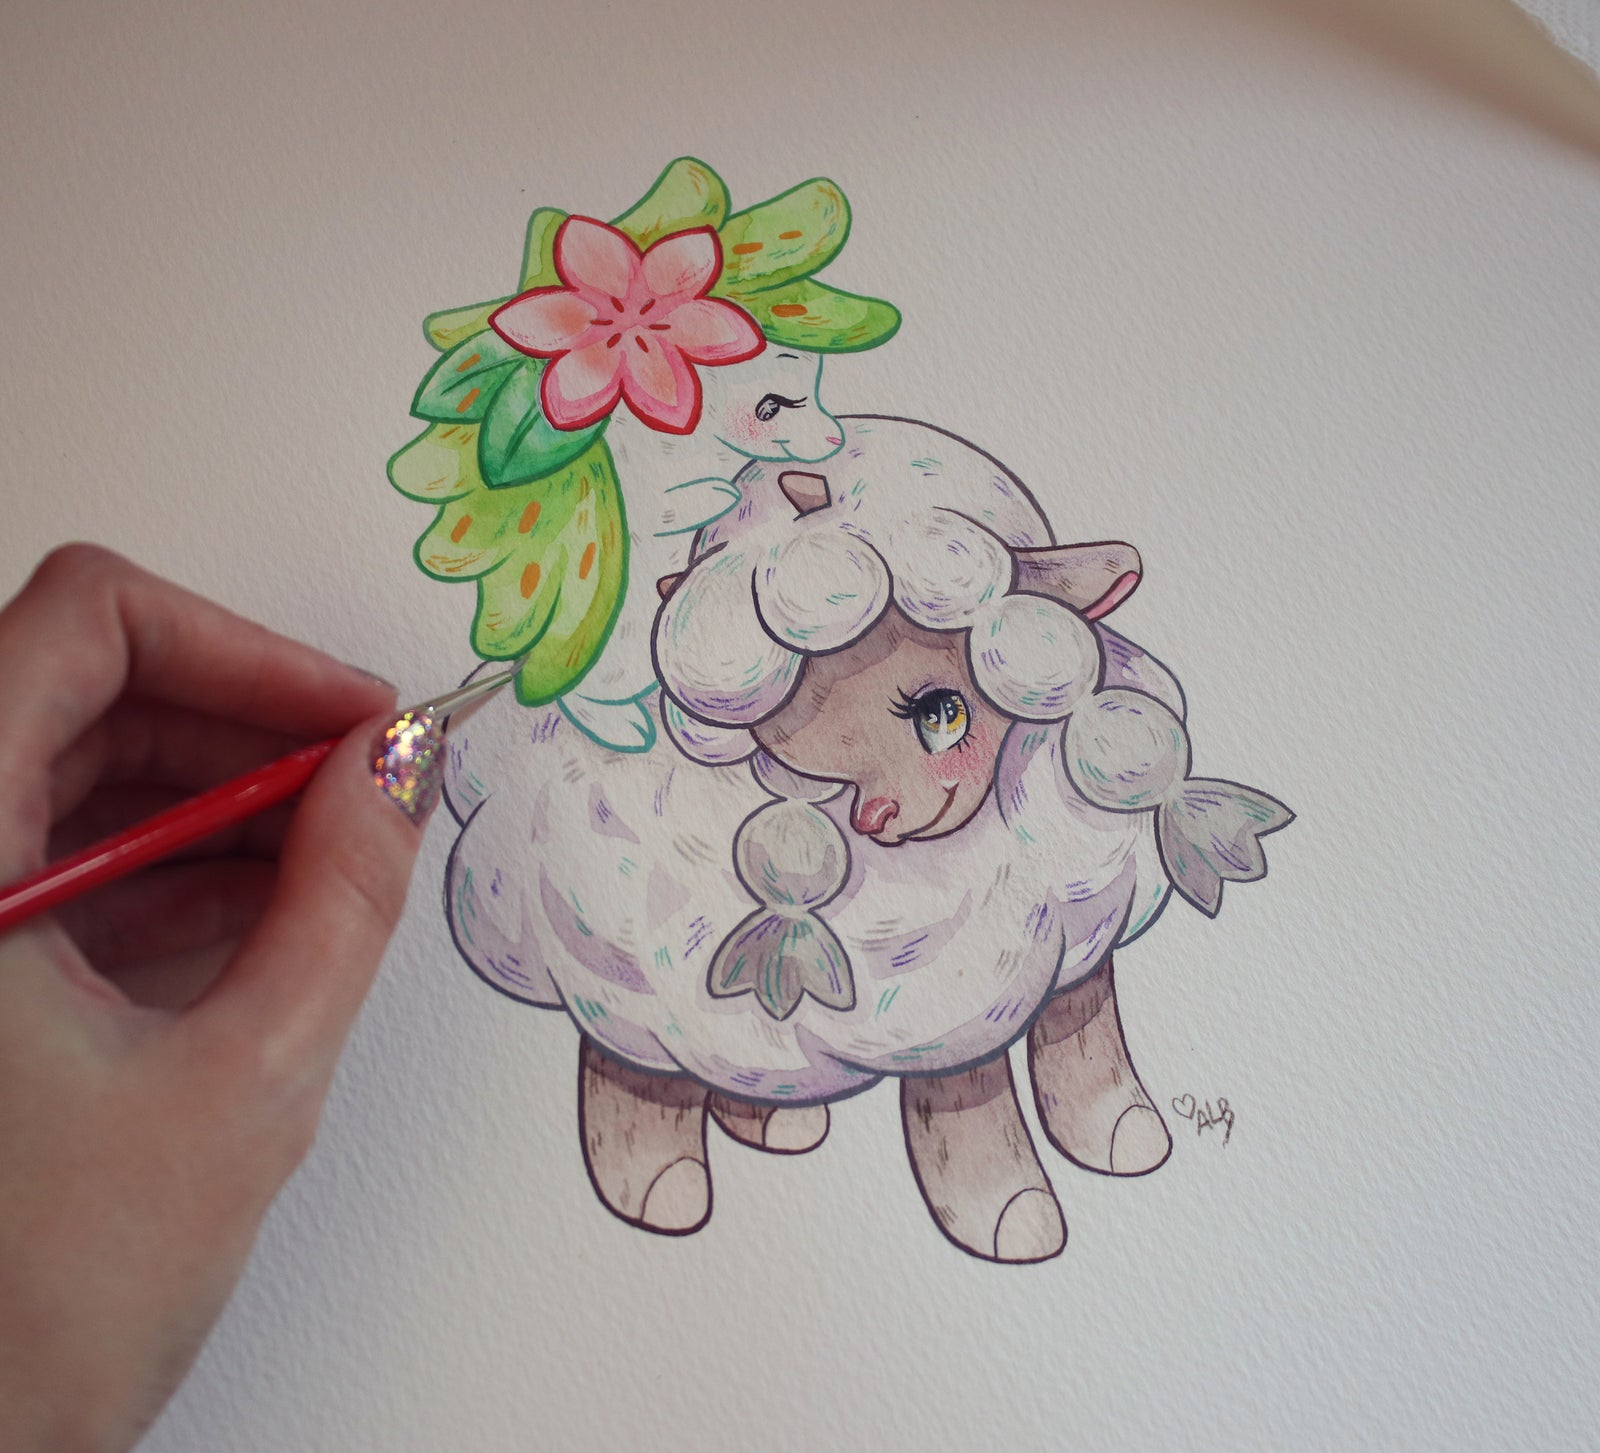 Original Painting: Little Golden Pokémon Wooloo